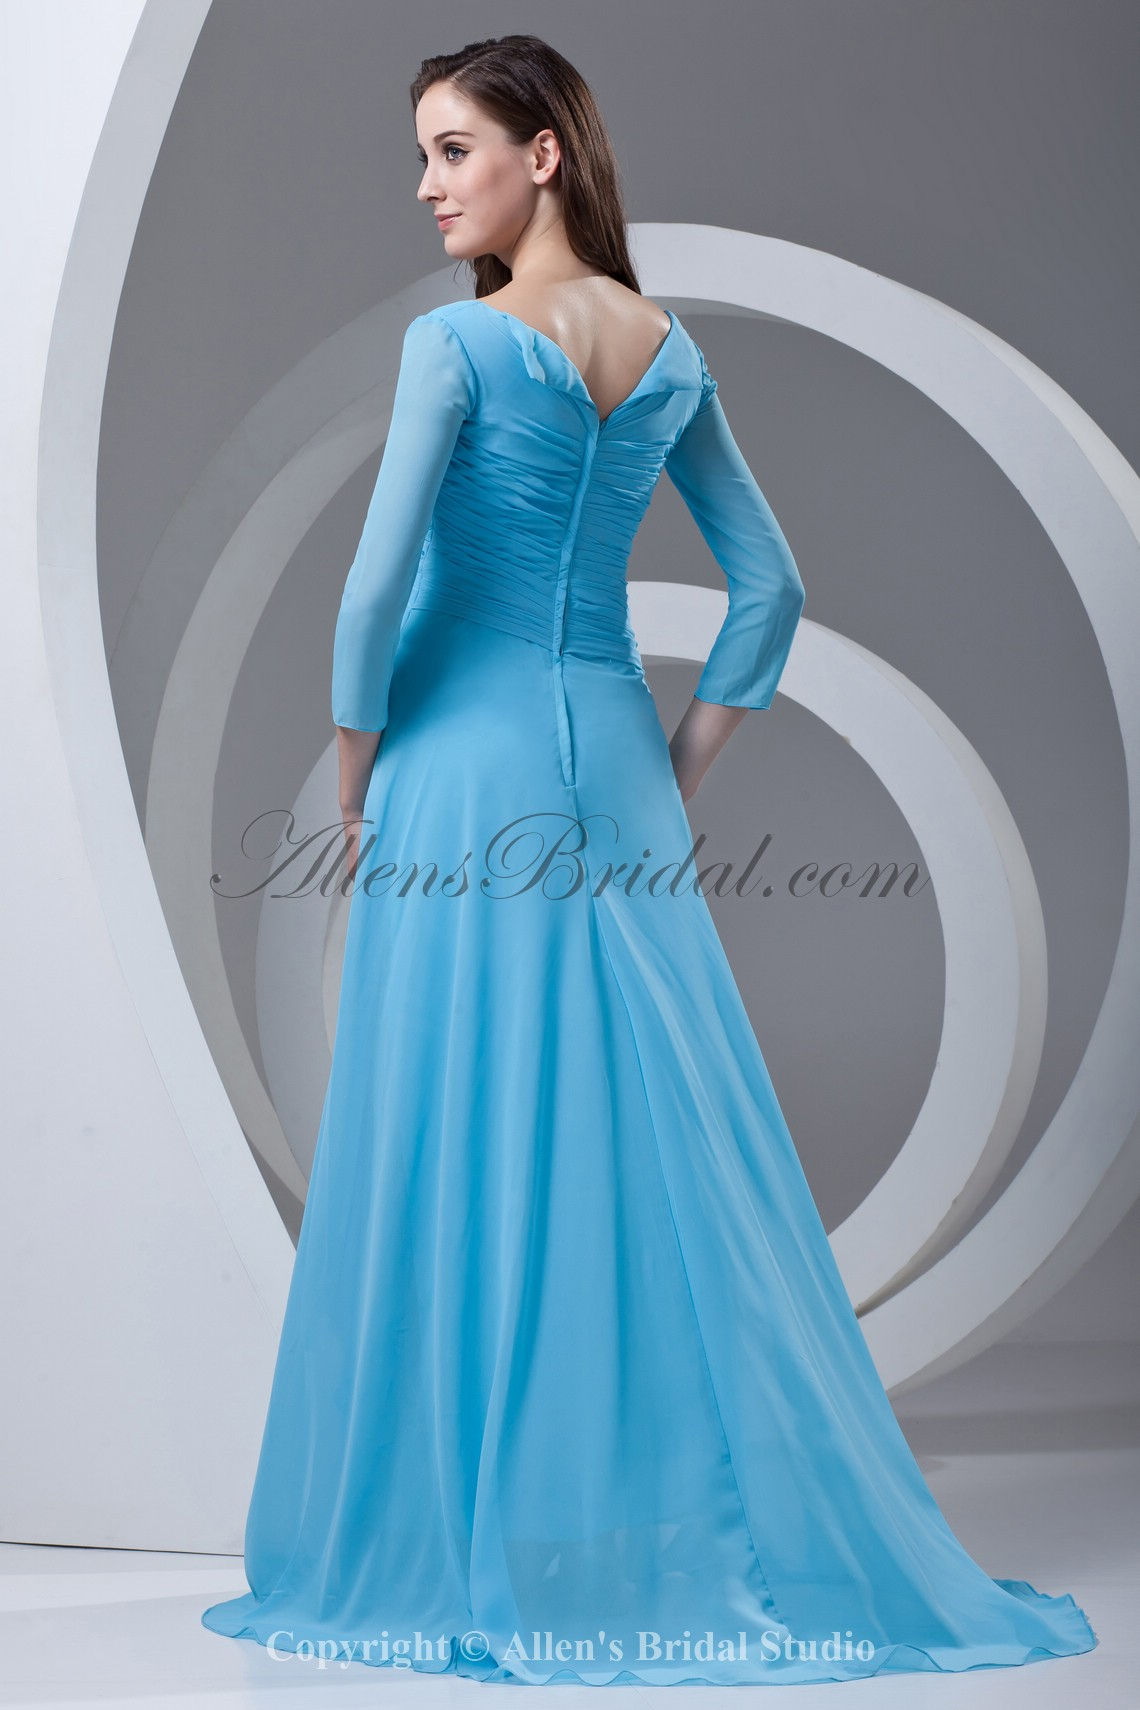 /337-2695/chiffon-square-neckline-sweep-train-column-prom-dress-with-three-quarter-sleeve-and-gathered-ruched.jpg